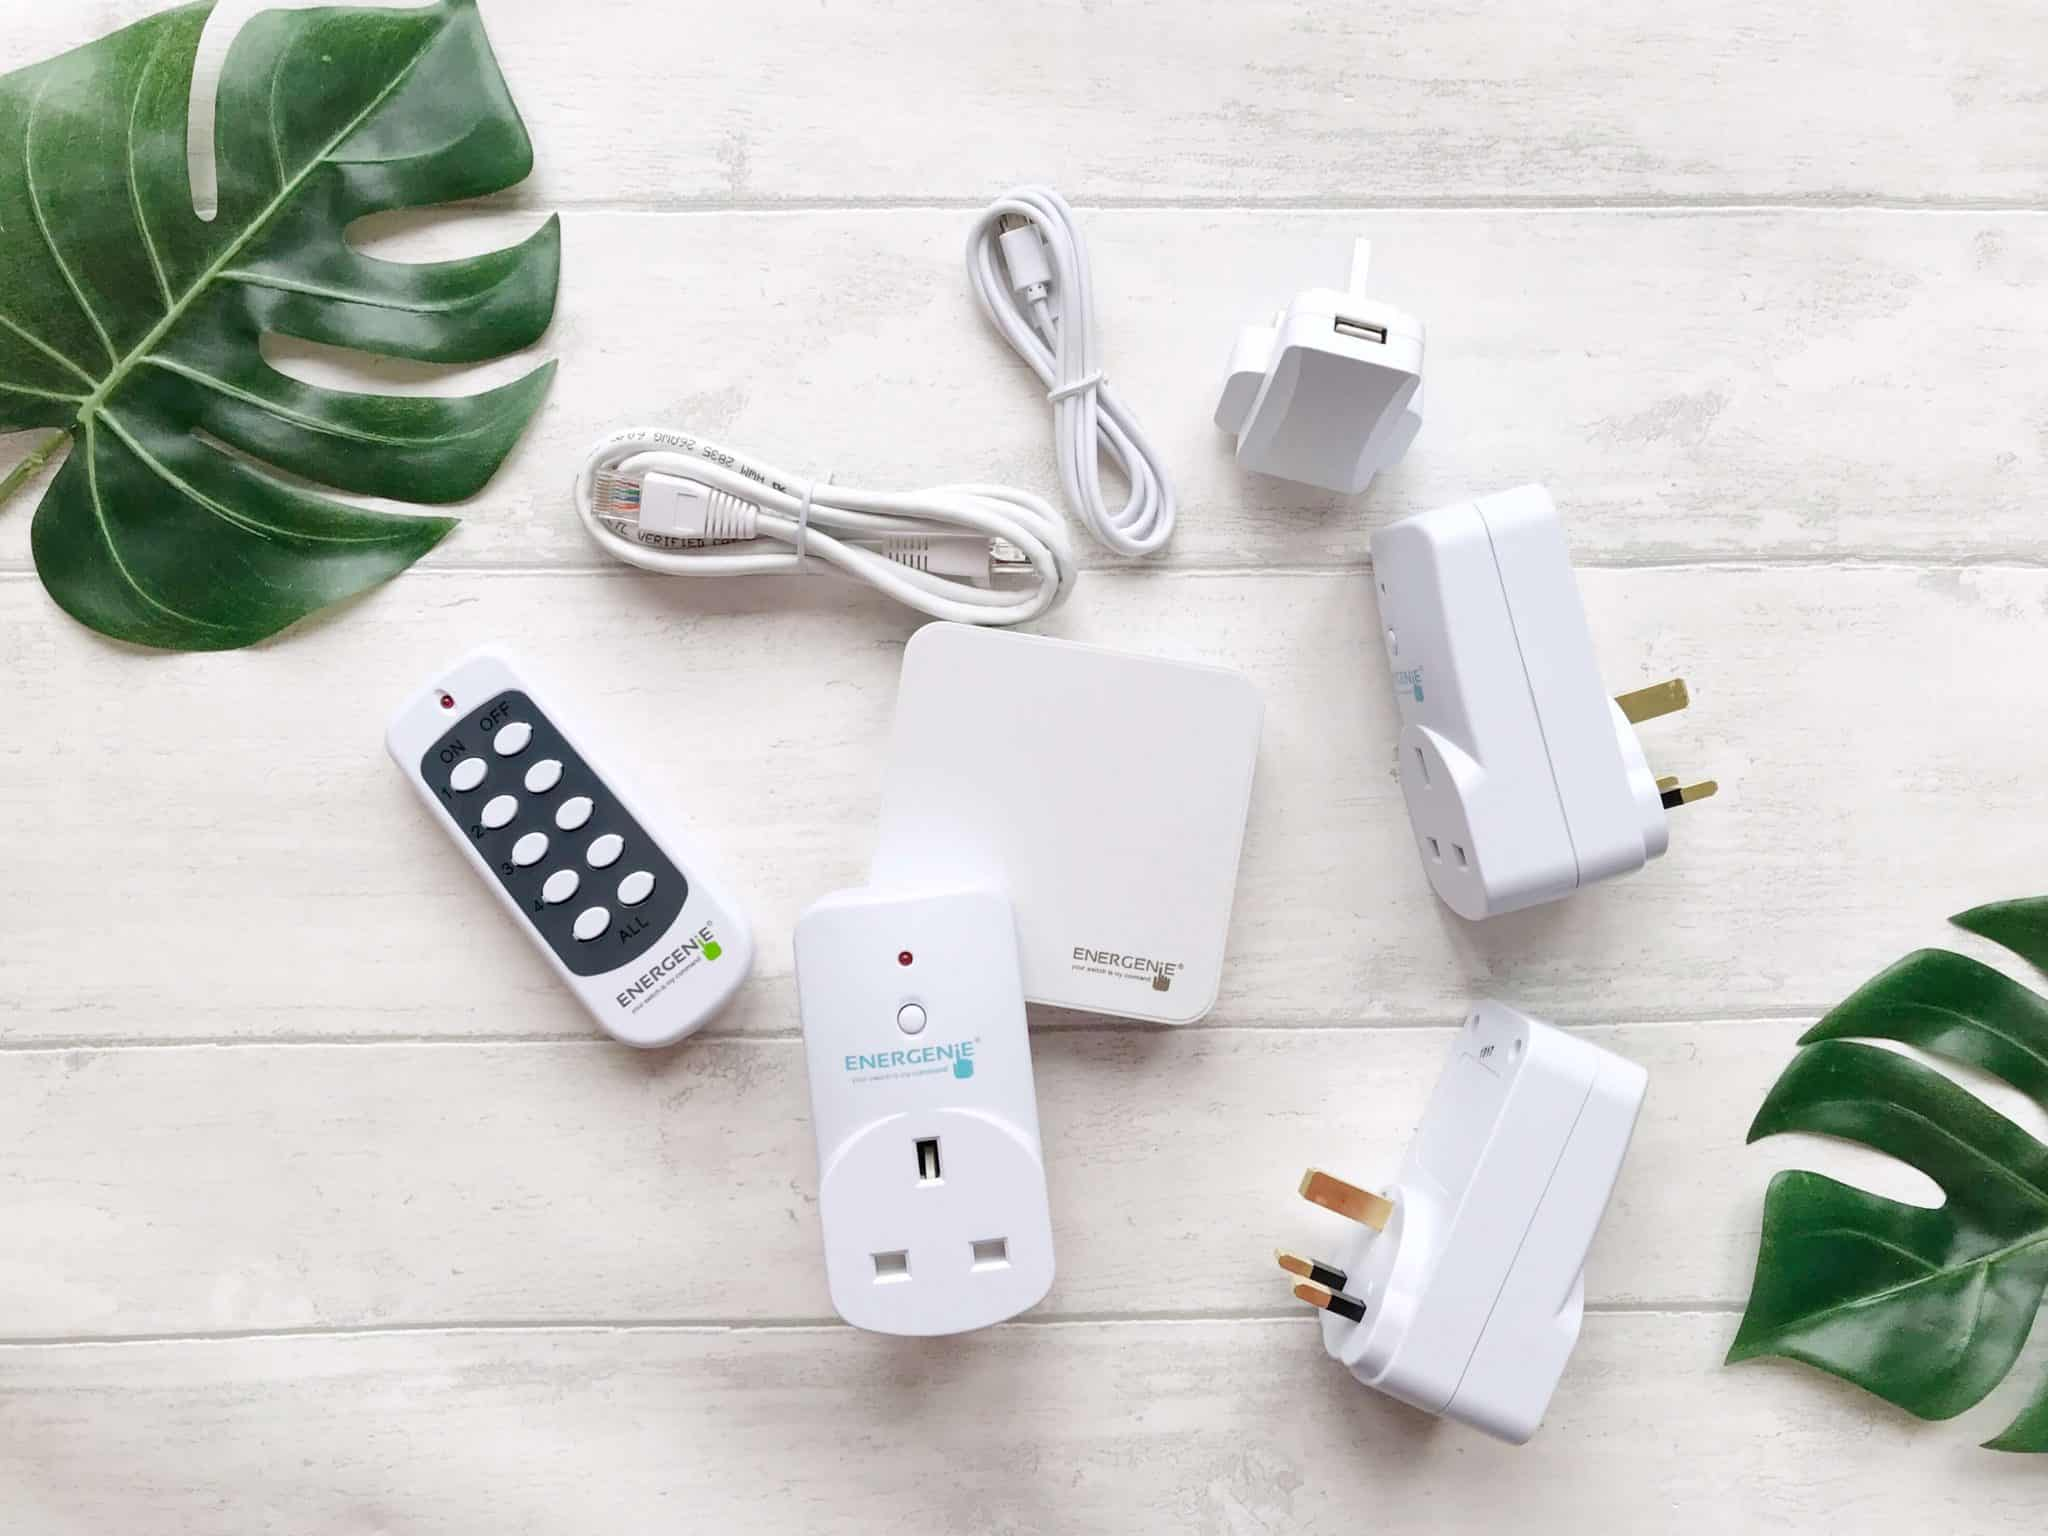 How To Save Energy at Home with Energenie MiHome Smart Plugs and Gateway